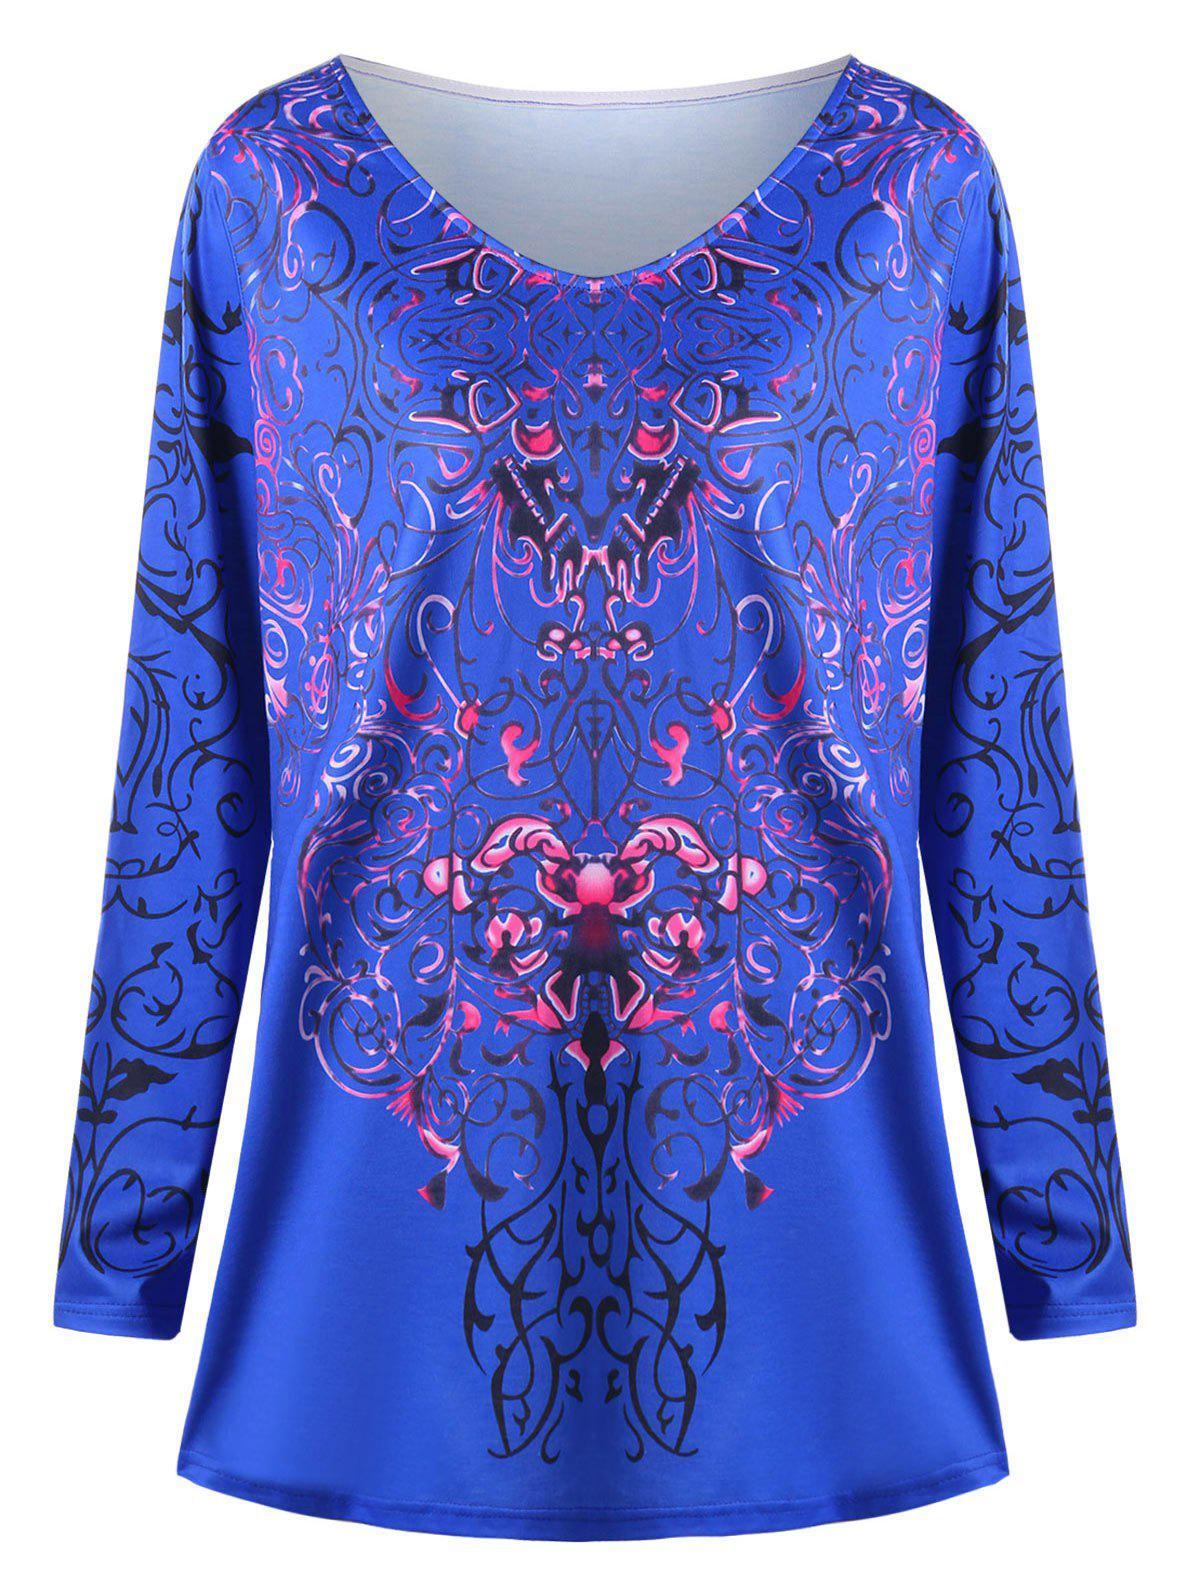 Plus Size Bandana Floral Long Sleeve TeeWOMEN<br><br>Size: 5XL; Color: BLUE; Material: Polyester,Spandex; Shirt Length: Long; Sleeve Length: Full; Collar: Scoop Neck; Style: Casual; Season: Fall,Spring,Summer; Pattern Type: Others; Weight: 0.3000kg; Package Contents: 1 x Top;